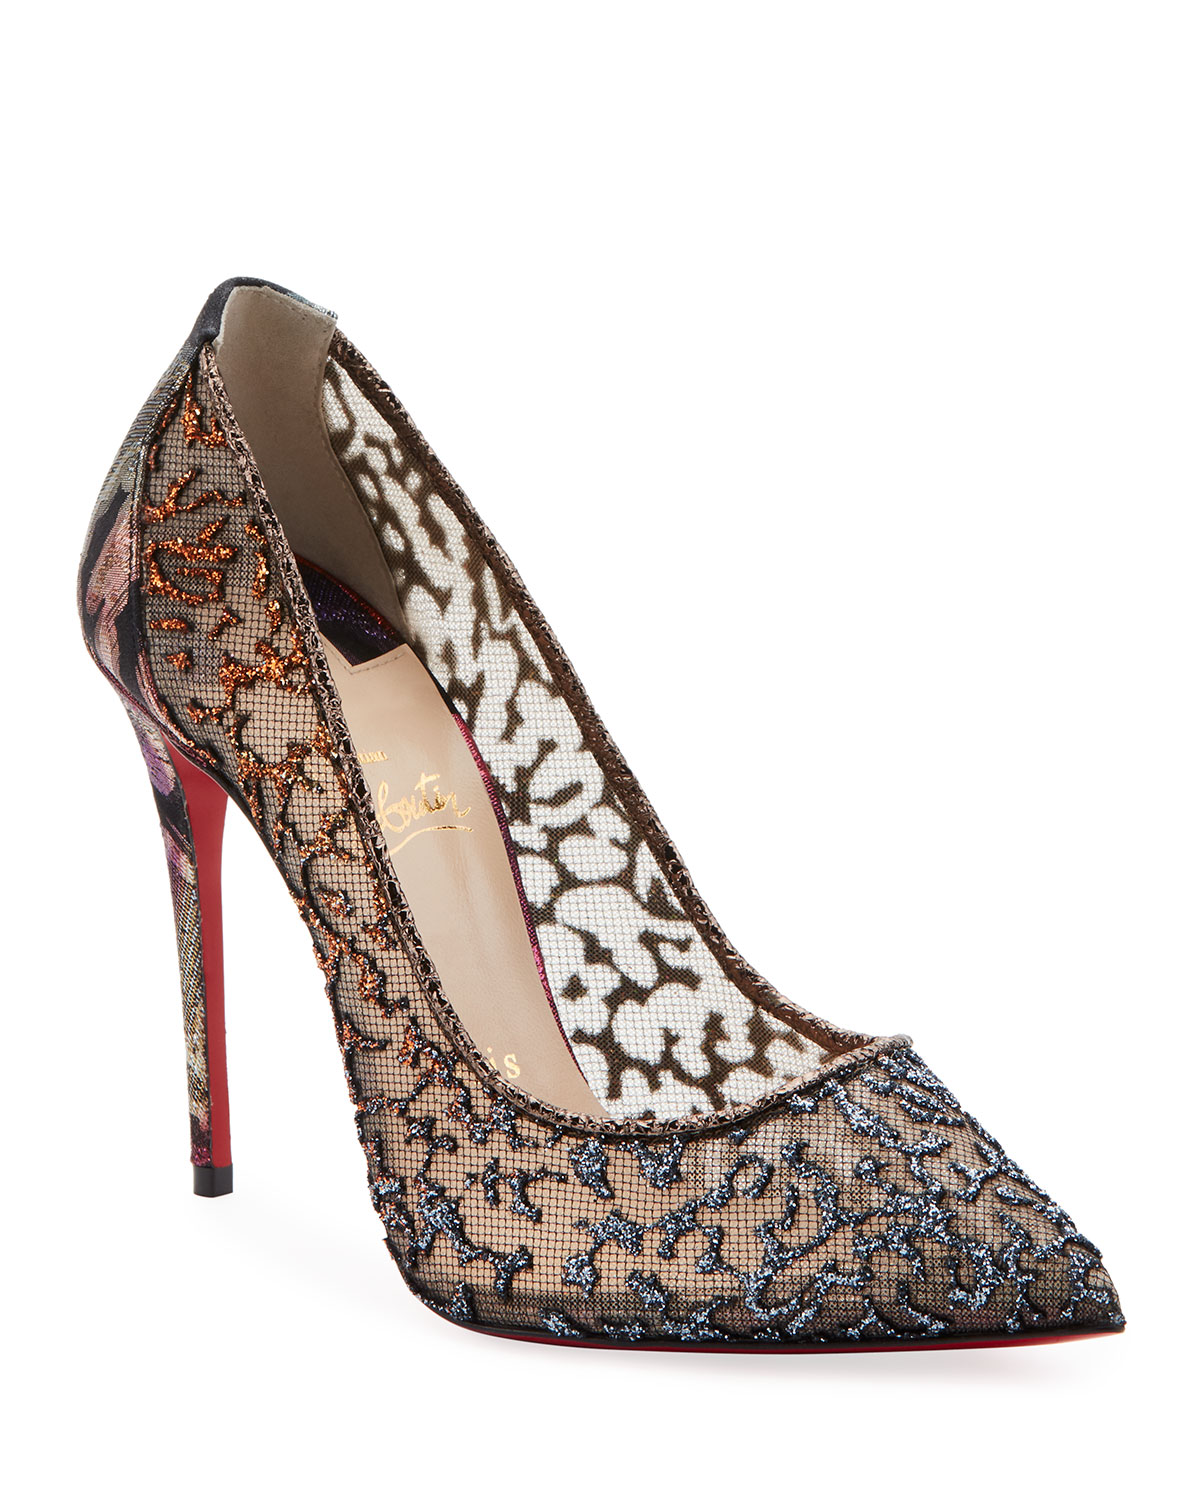 buy online 548f3 3ad6f Follies Lace Red Sole Pumps